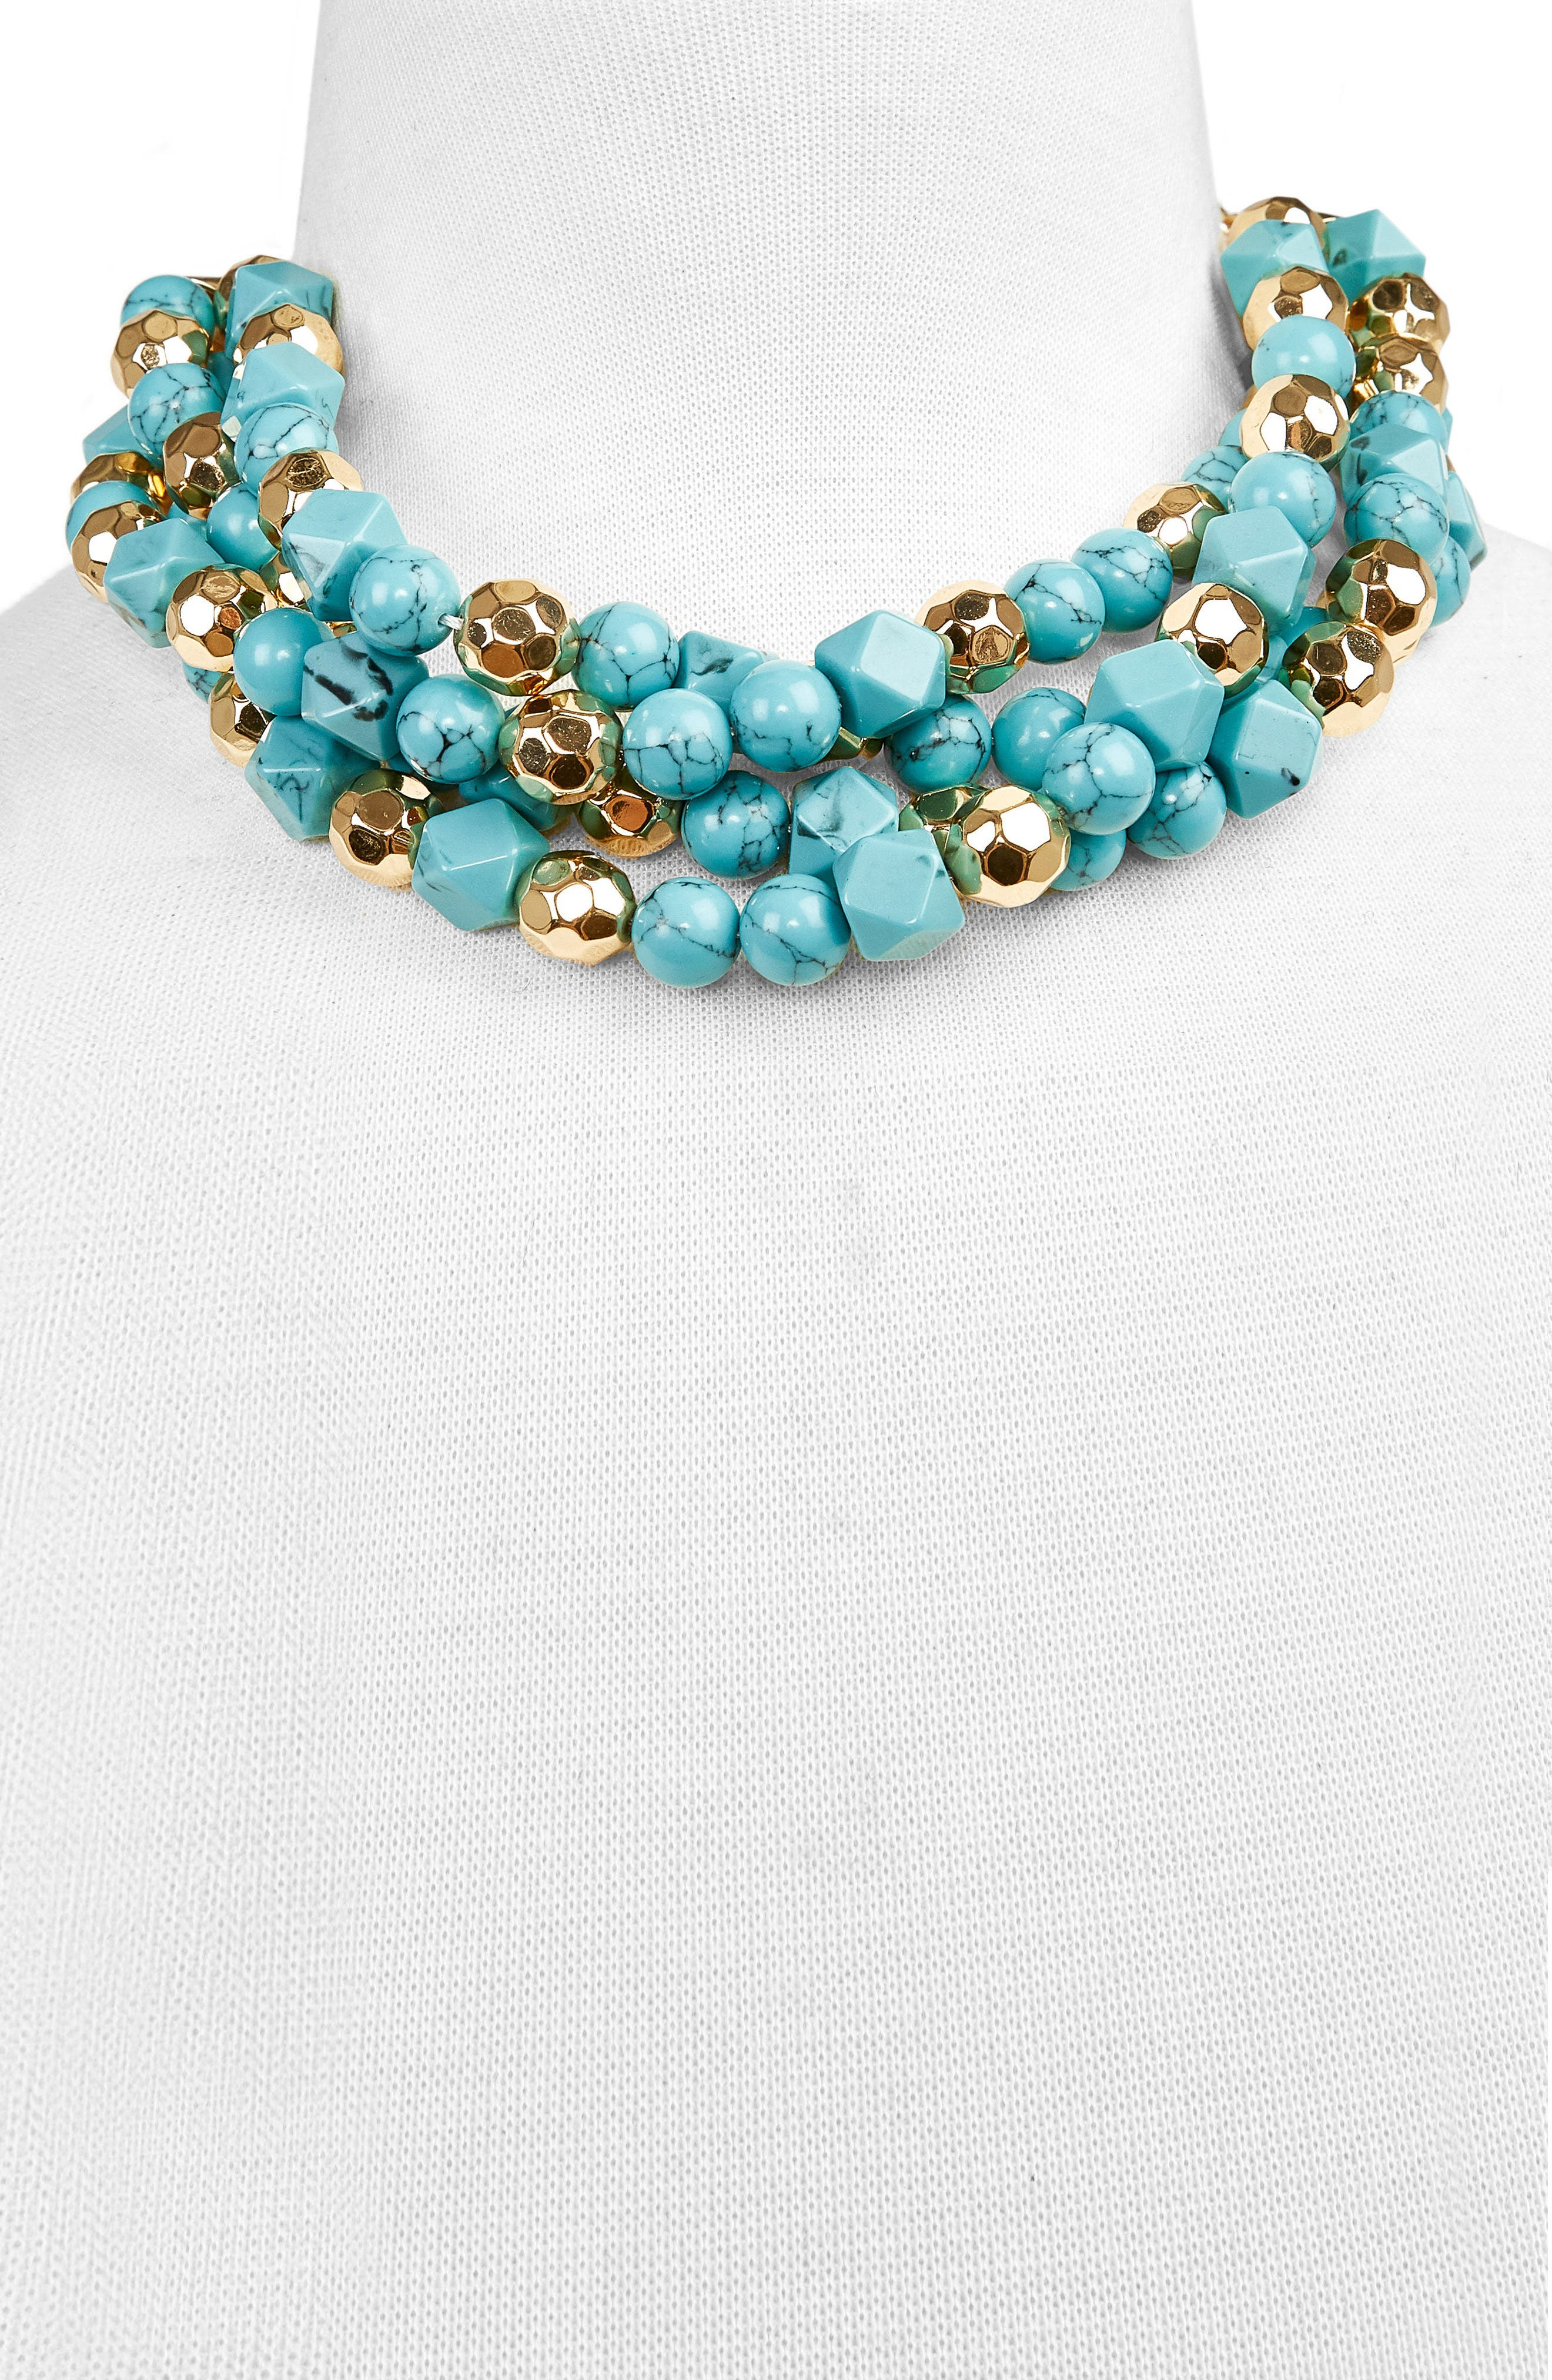 Cytherea Statement Necklace,                             Alternate thumbnail 2, color,                             Turquoise